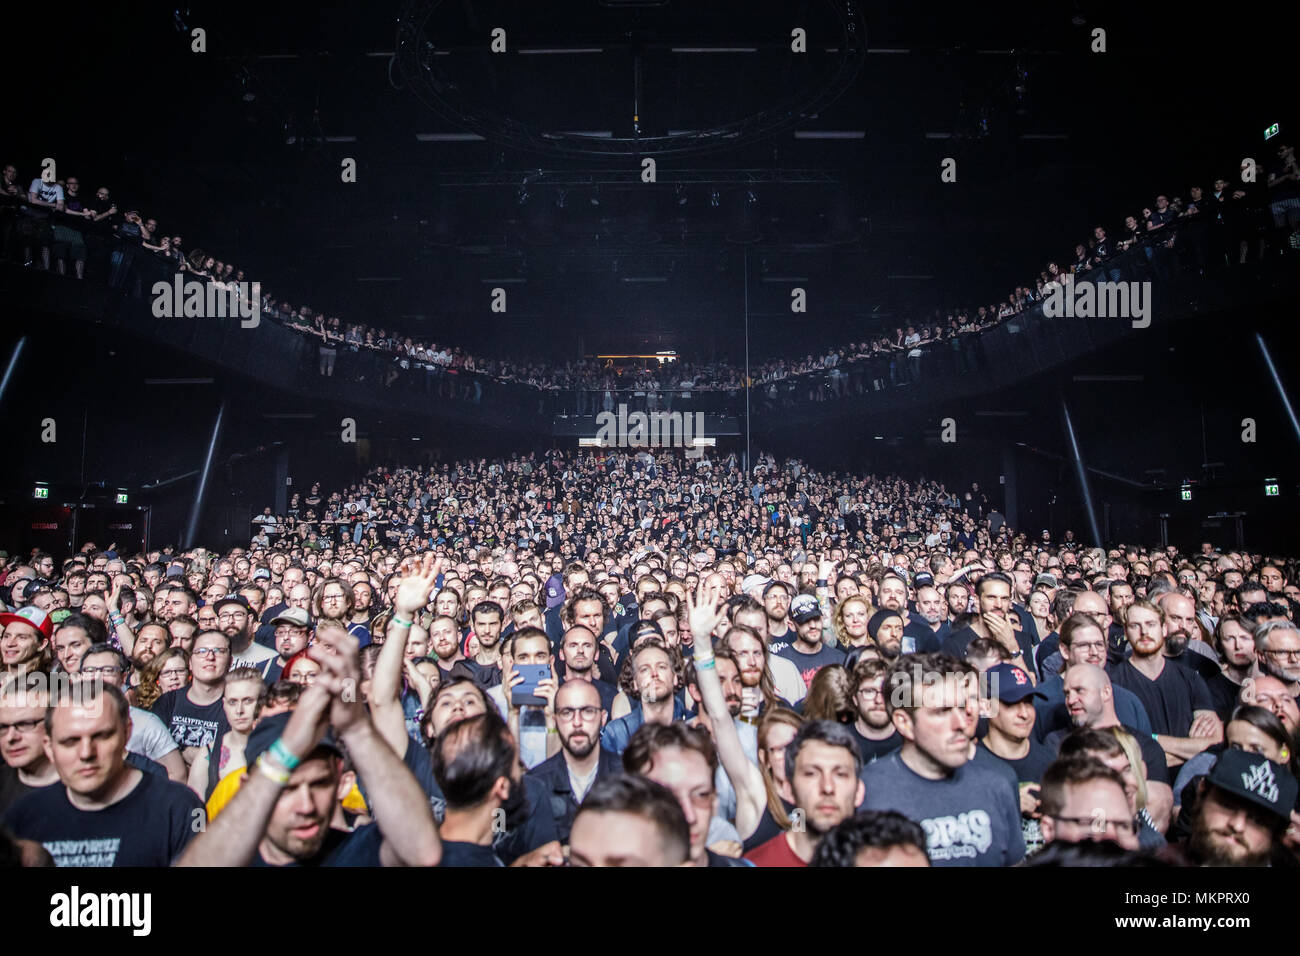 Netherlands, Tilburg - April 19, 2018  The venue is packed with